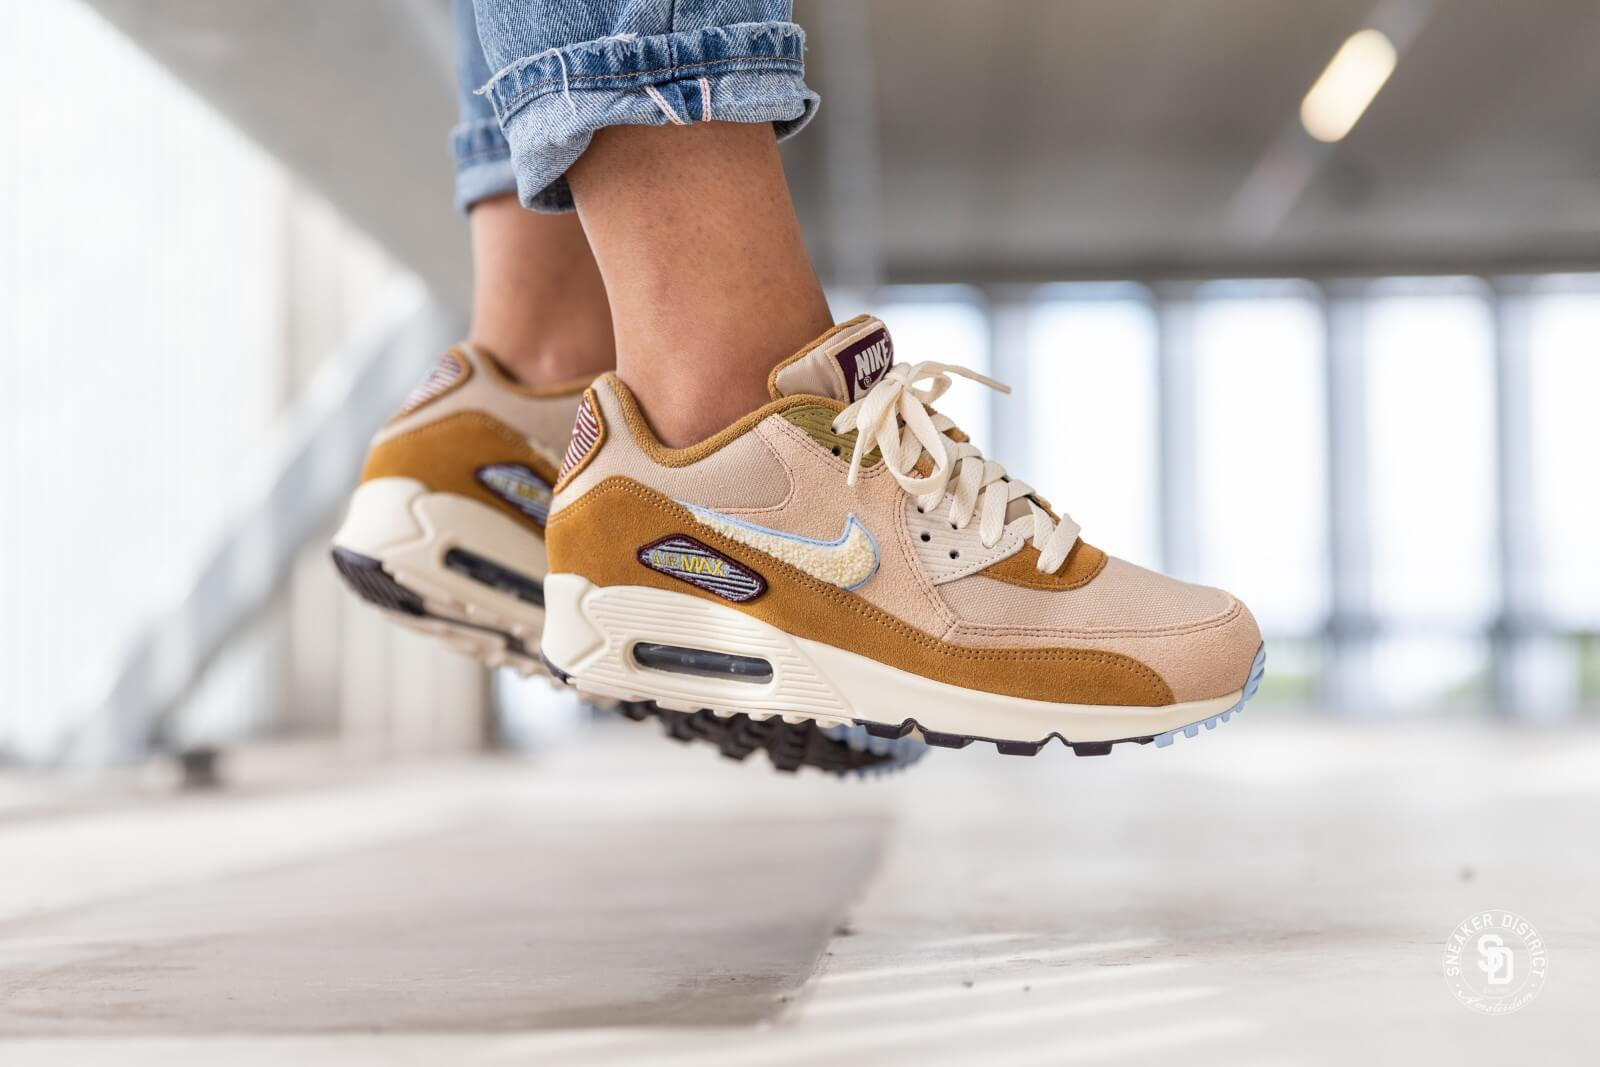 Nike Air Max 90 Premium SE Muted Bronze Light Cream